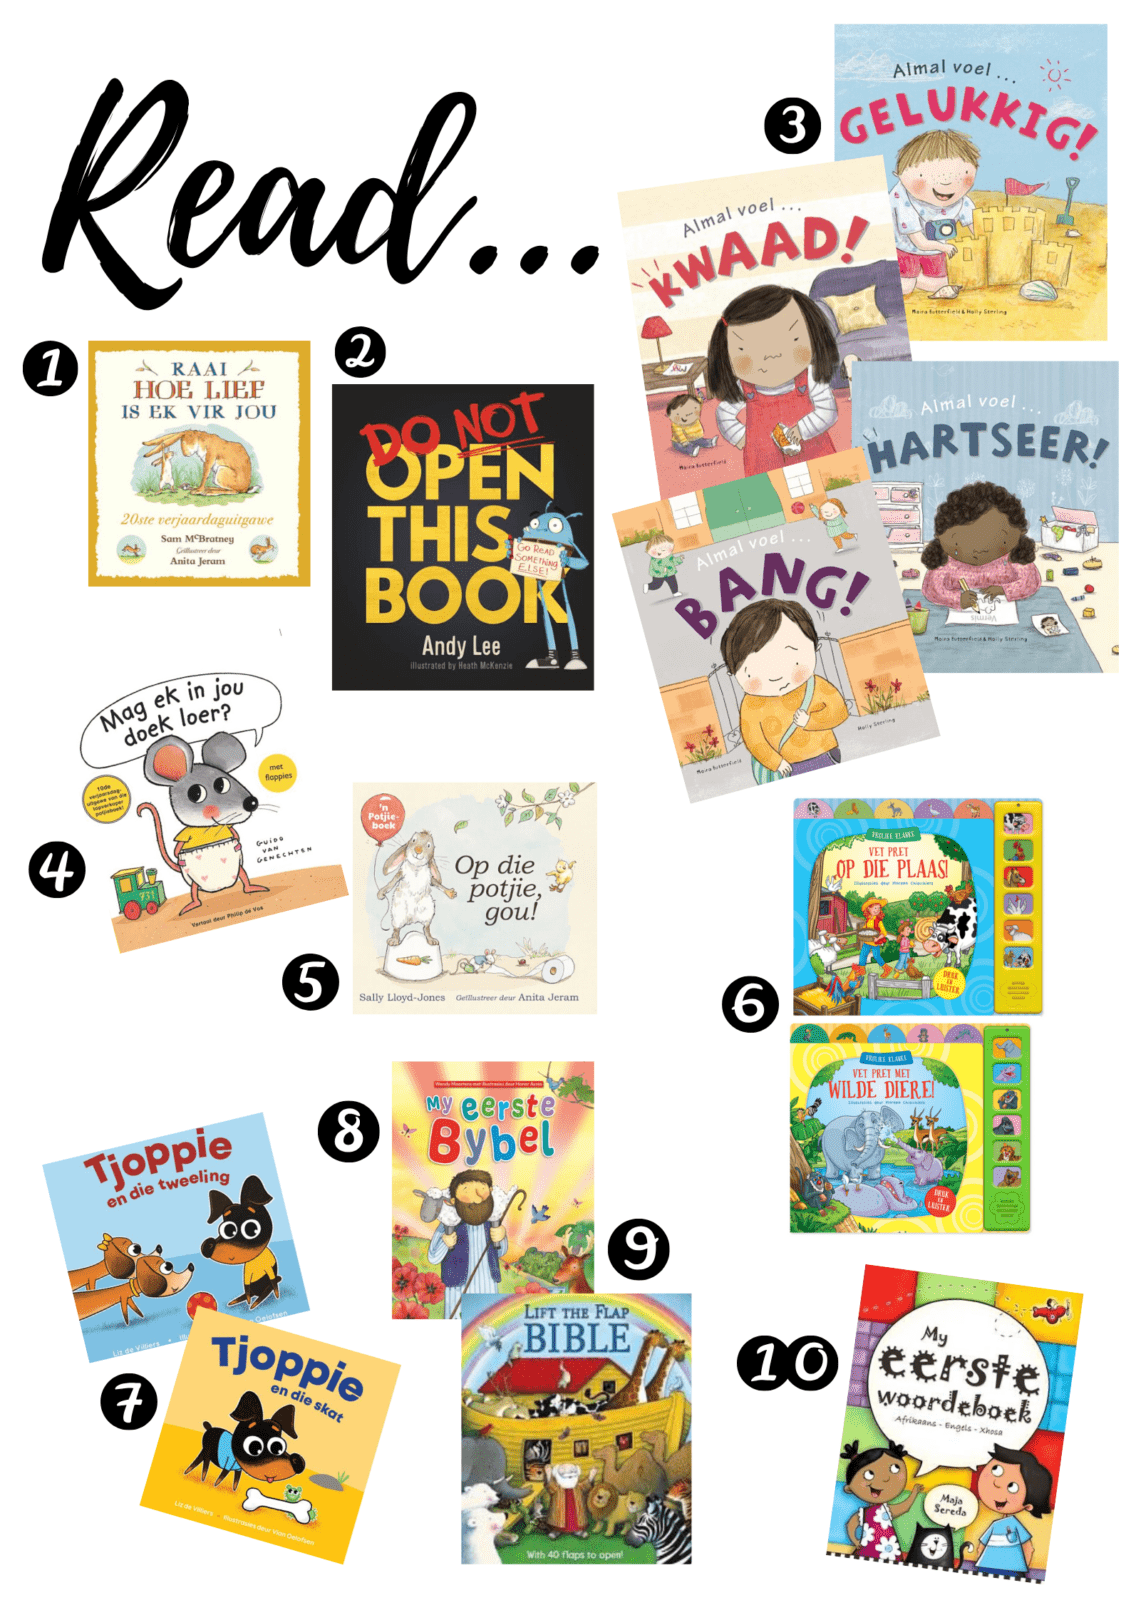 Want Need Wear And Read Gift Guides For toddlers Books